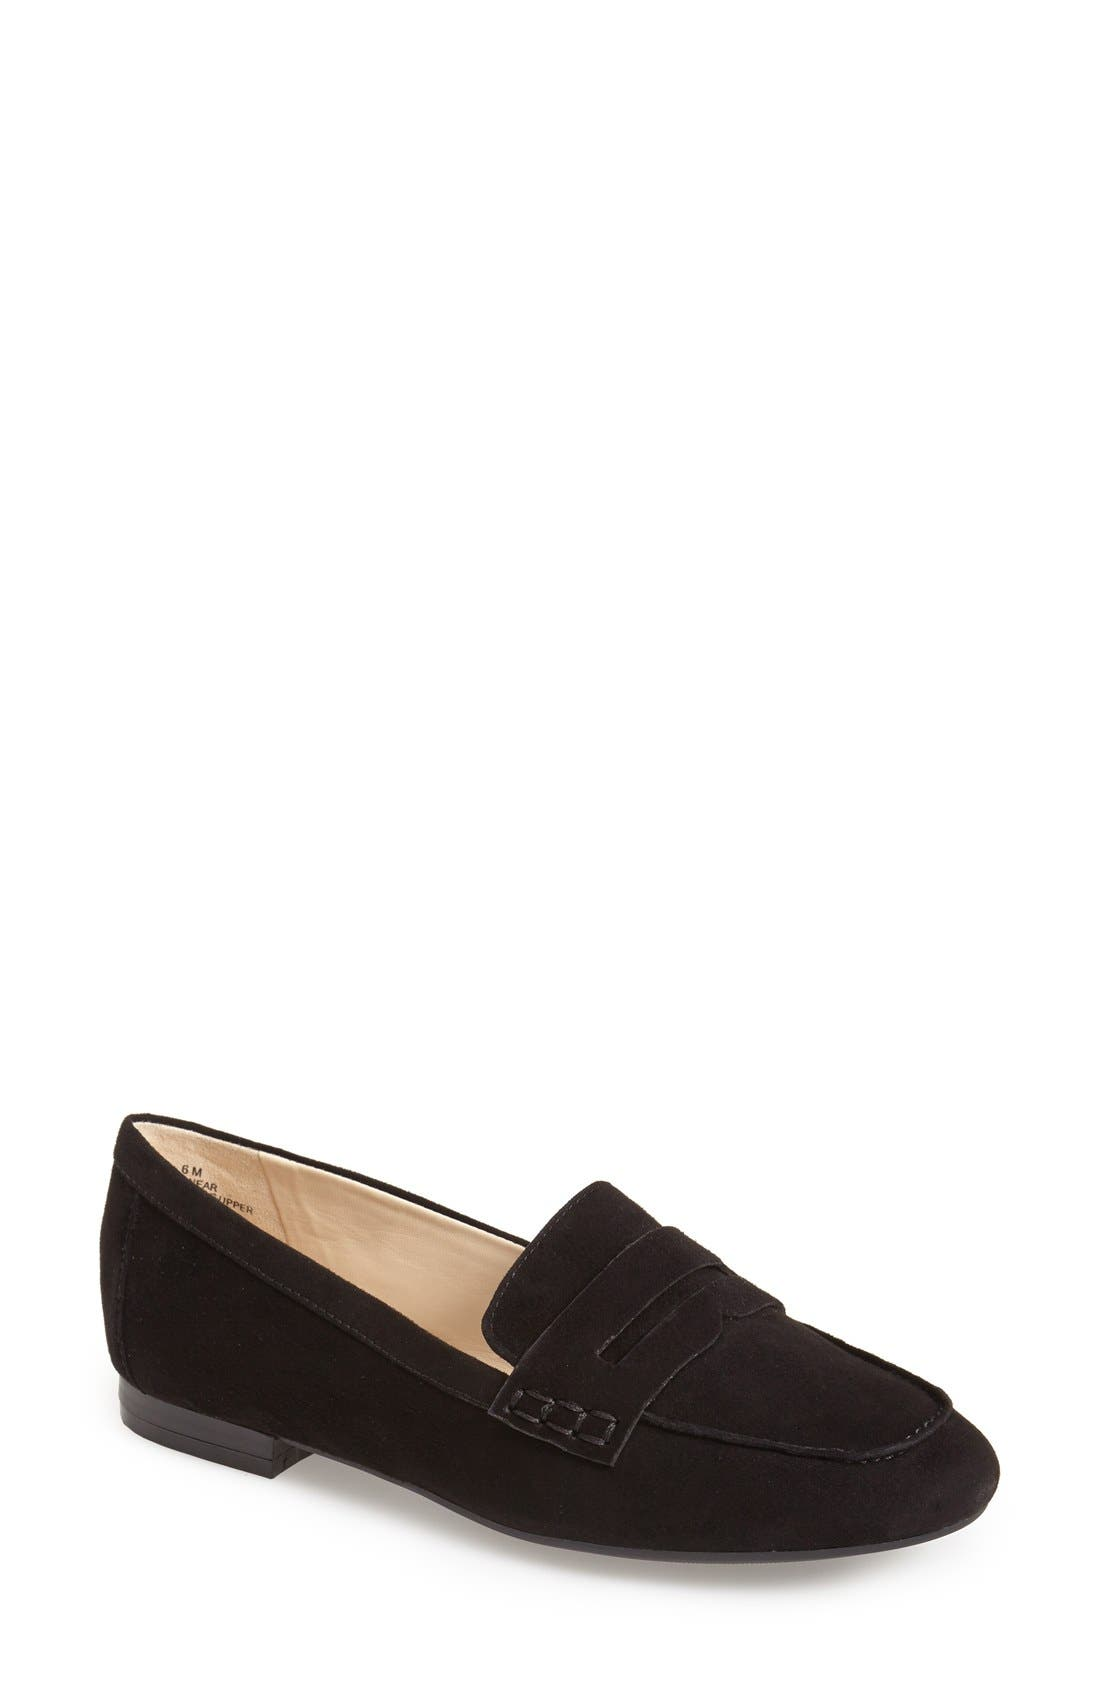 Main Image - Nine West 'Linear' Suede Penny Loafer (Women)